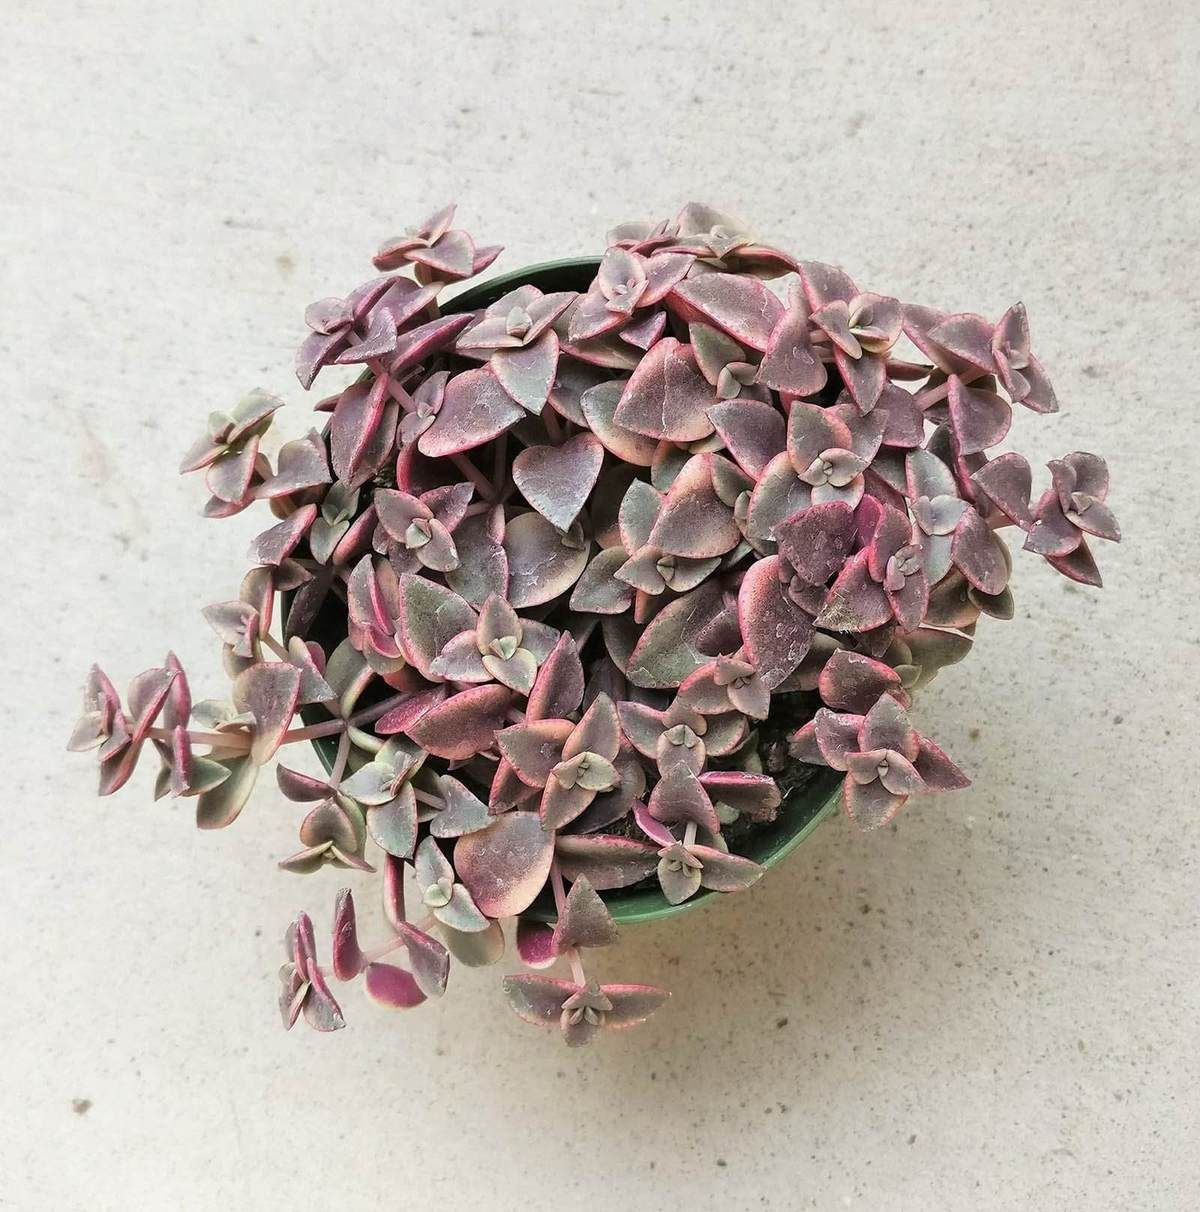 Calico Kitten Crassula Pink Succulent Succulents Red Succulents